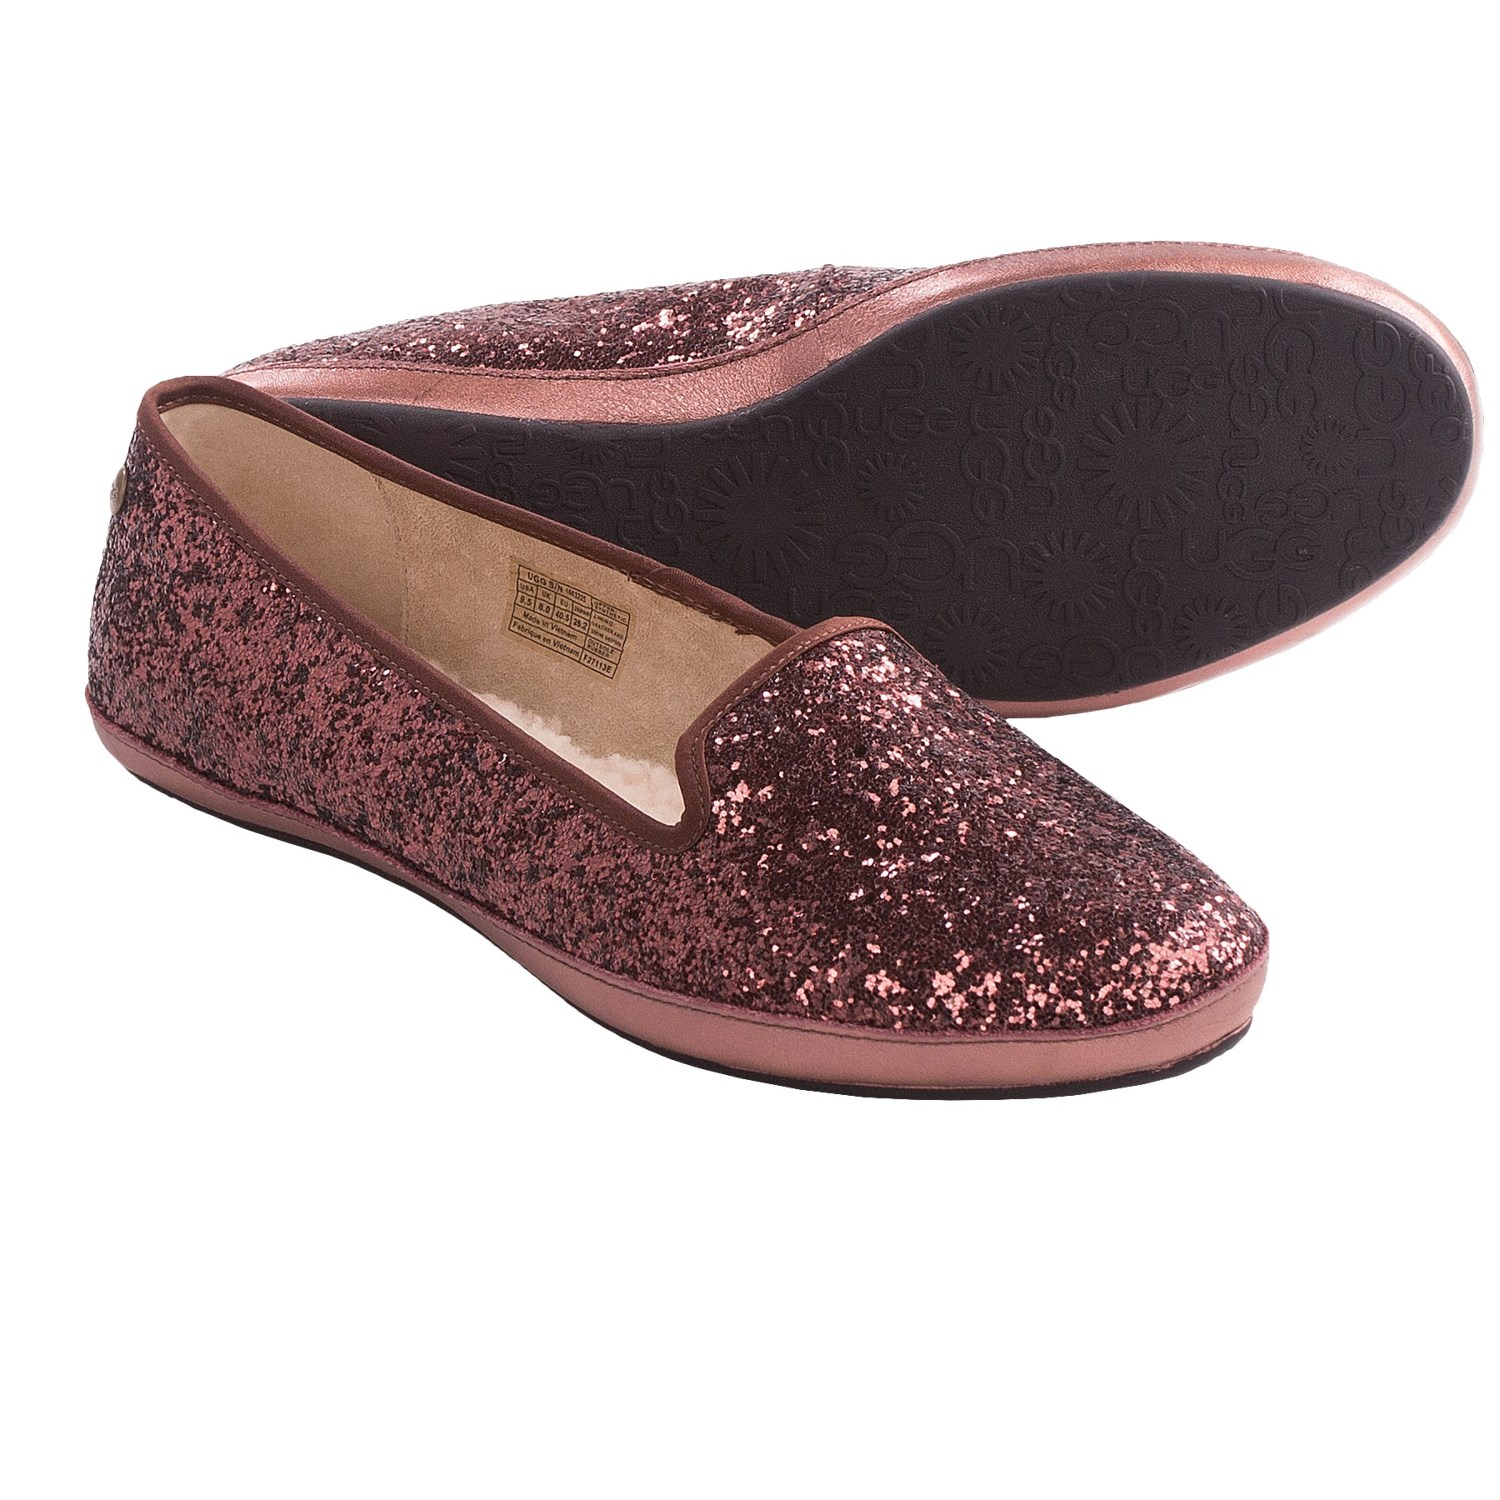 Find great deals on eBay for womens glitter slippers. Shop with confidence.